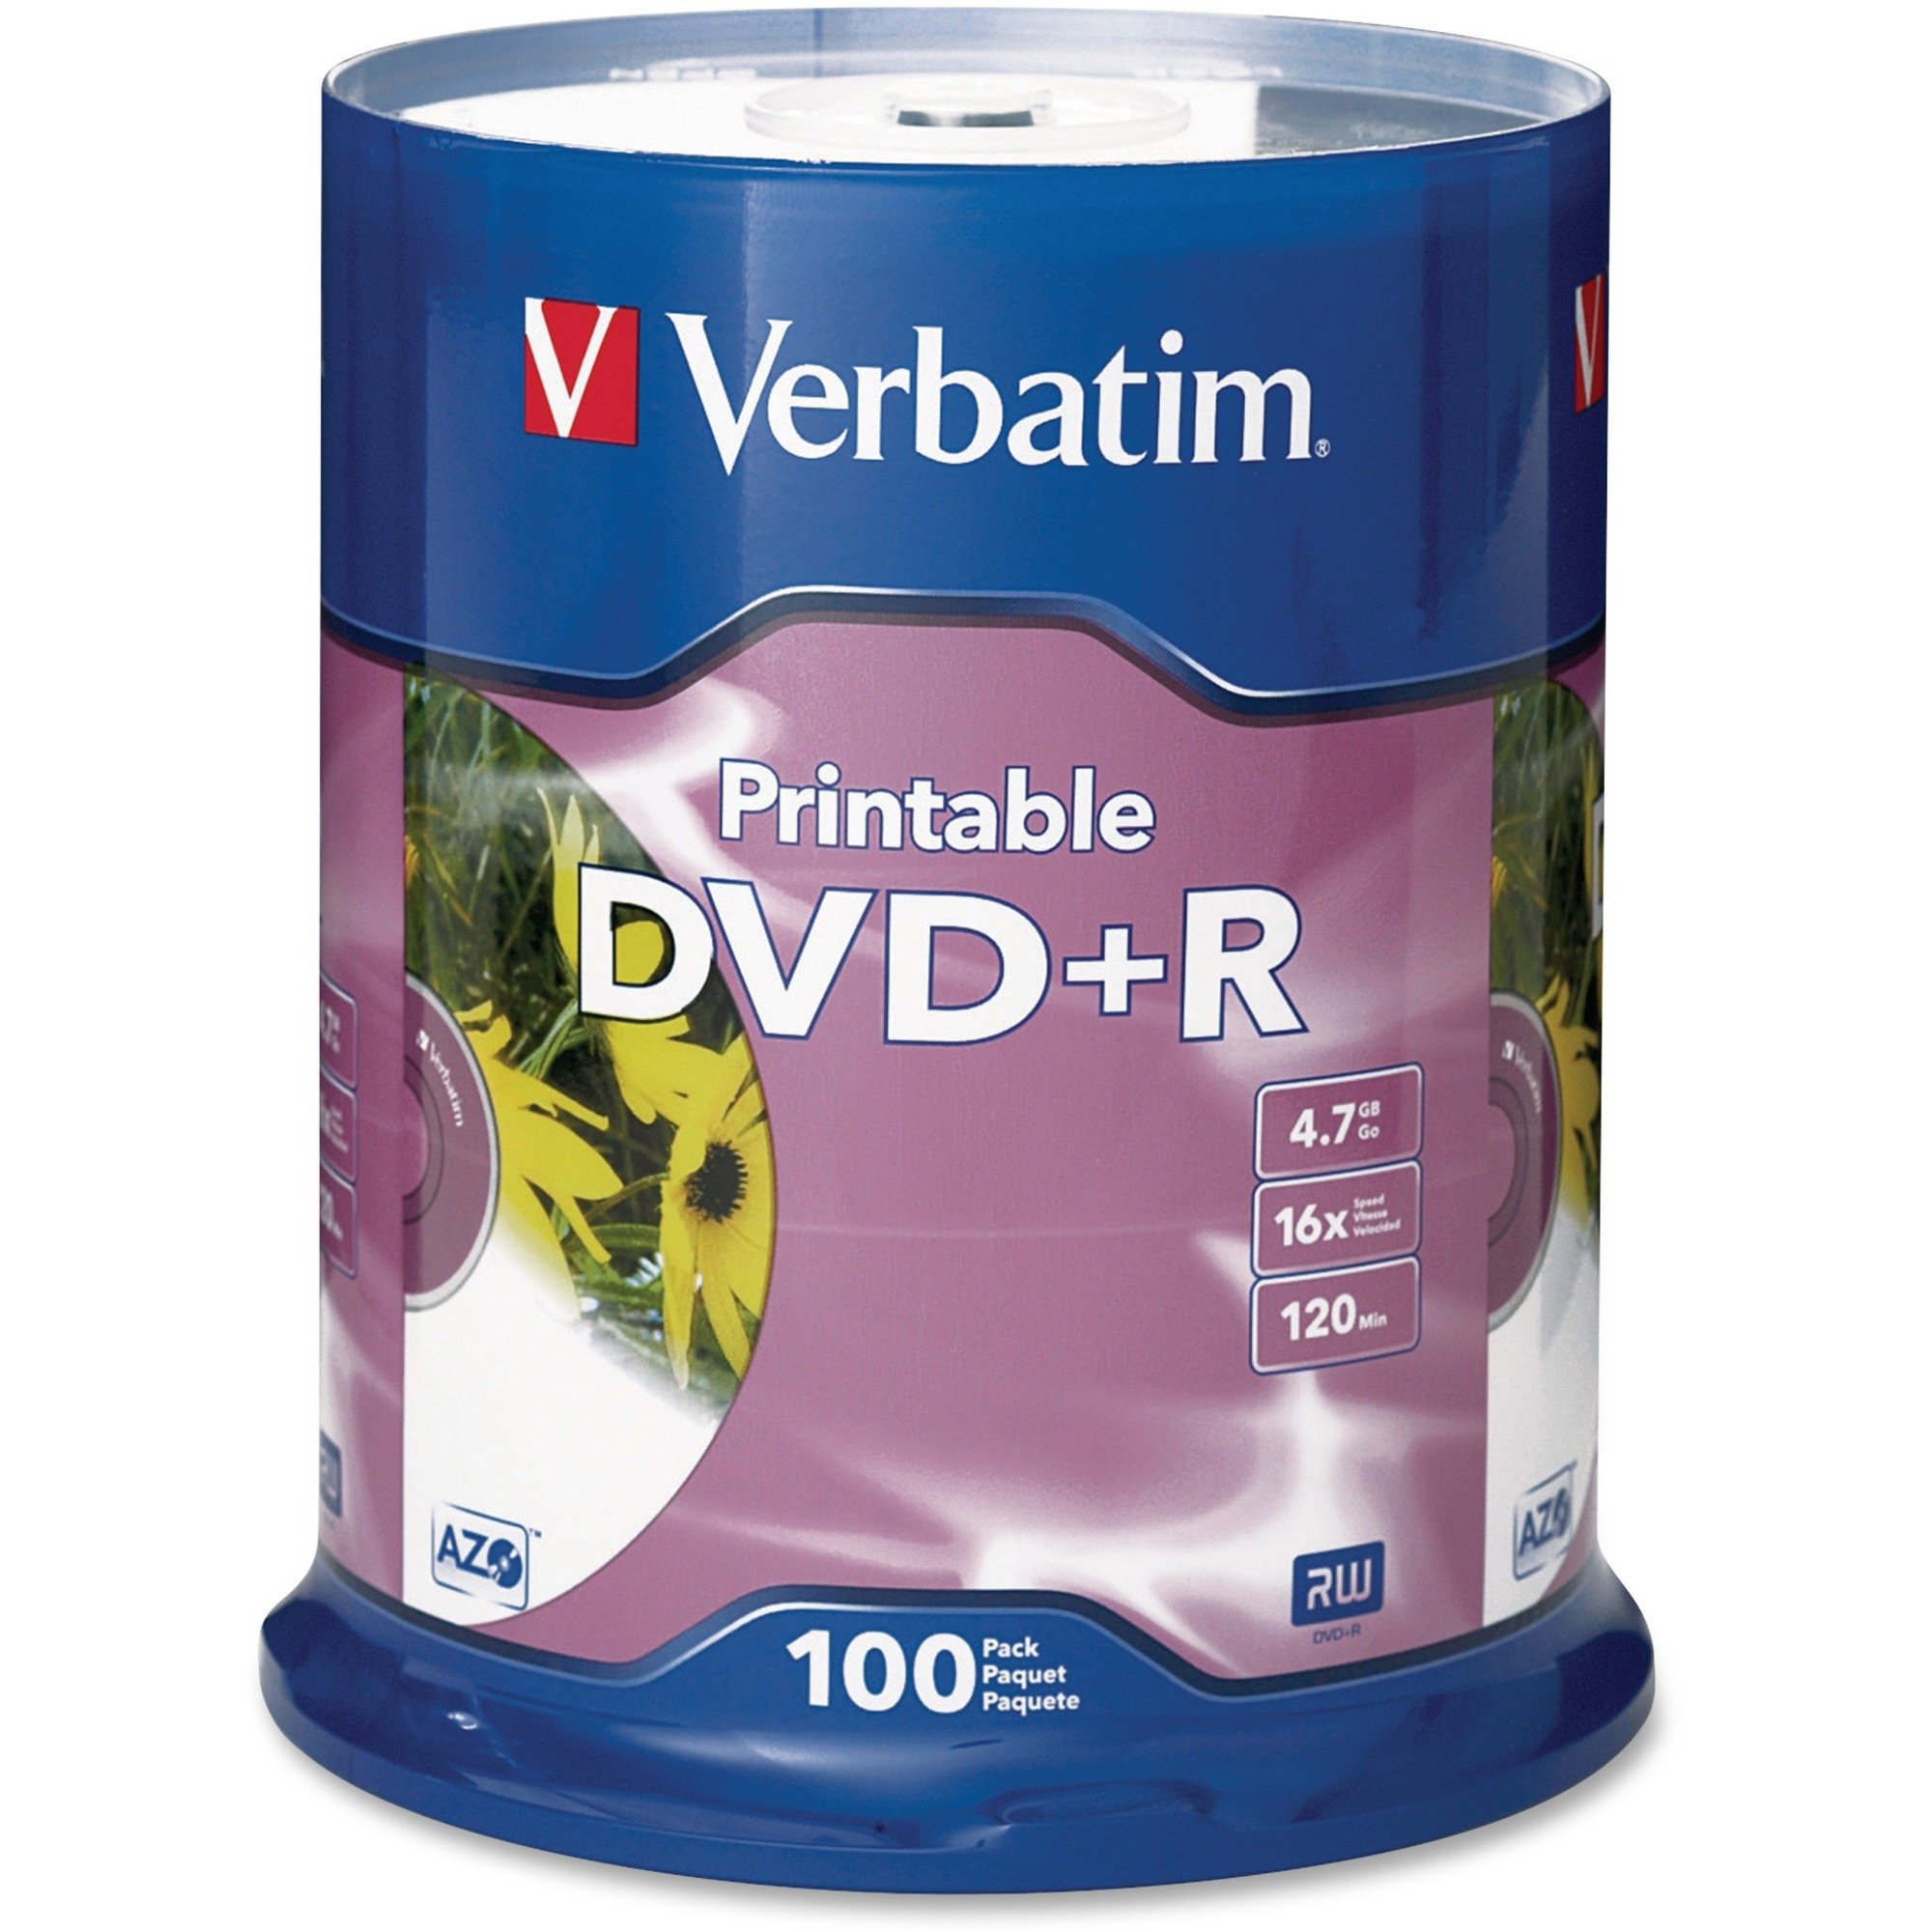 graphic about Verbatim Printable Dvd R titled VER95145